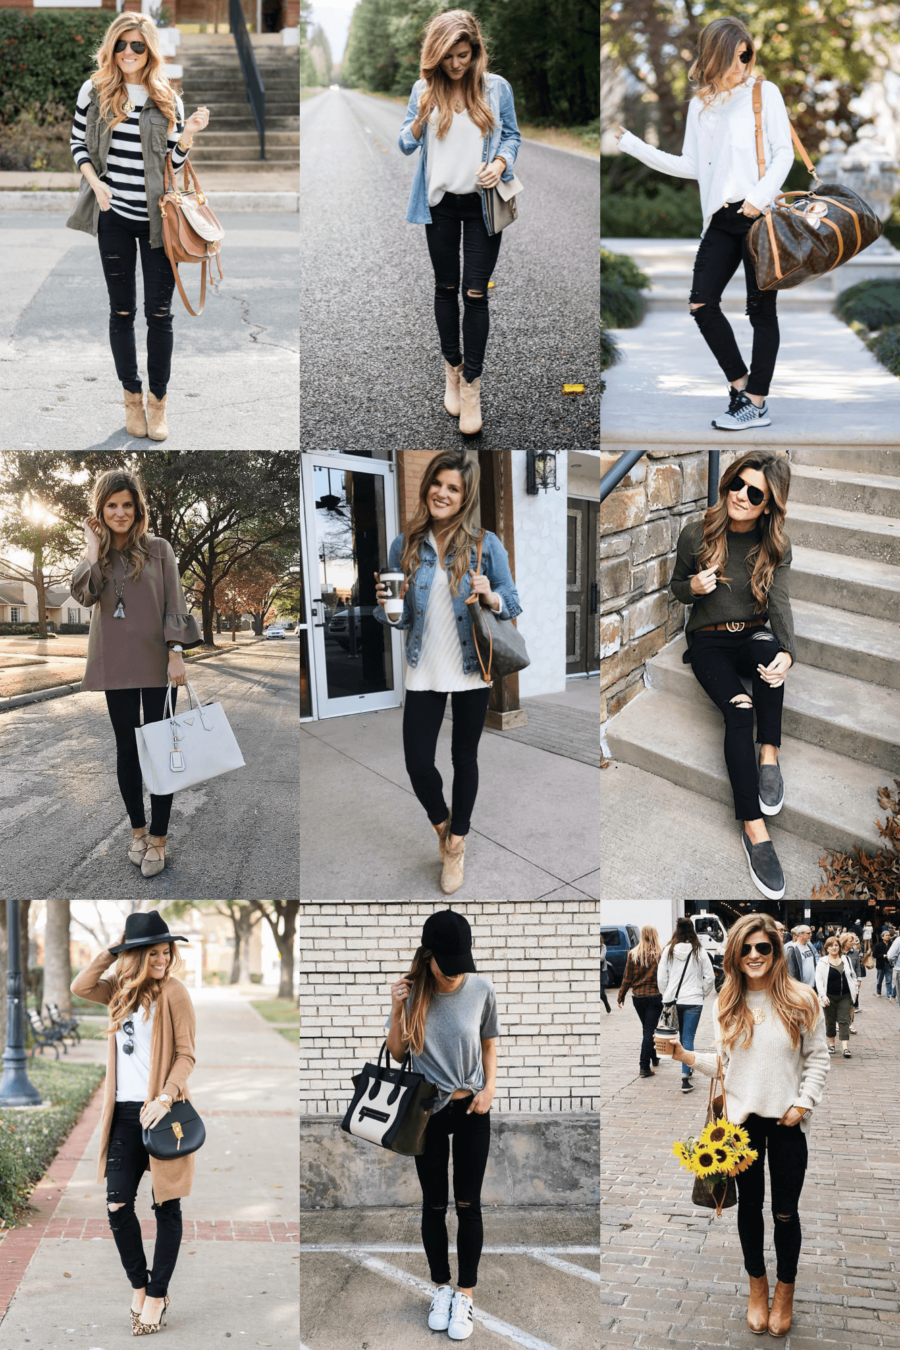 d6ad841d3a96 What to wear with black jeans - 30+ Black Jeans Outfit Ideas